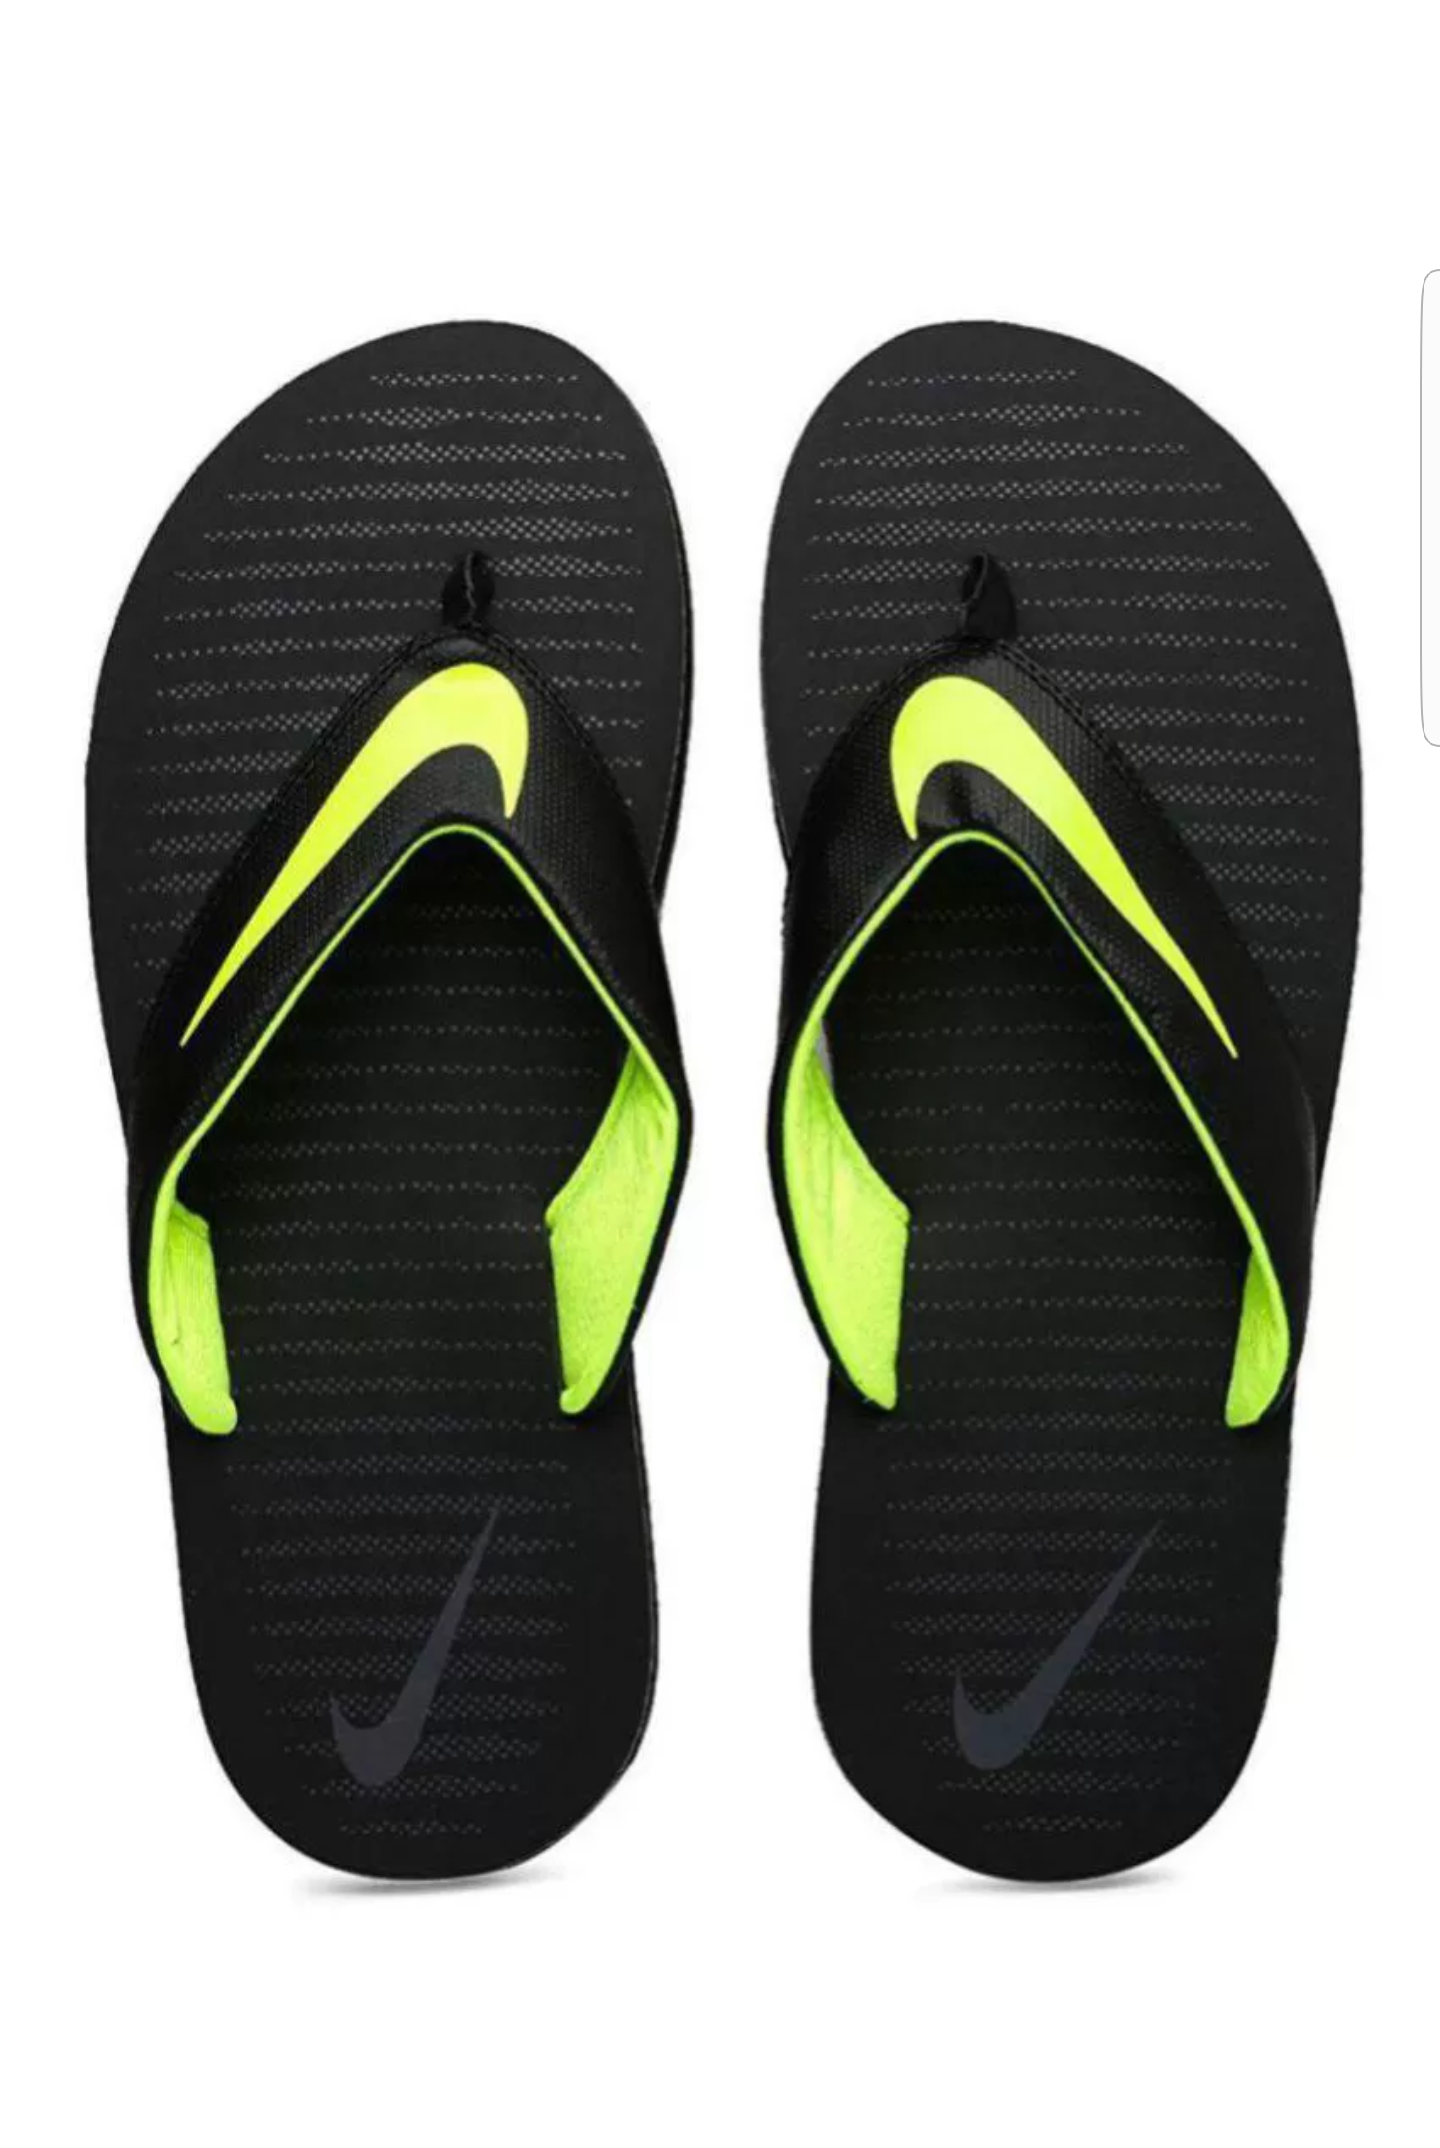 0a6ca233bb97 Nike Green Thong Flip Flop Price in India- Buy Nike Green Thong Flip Flop  Online at Snapdeal